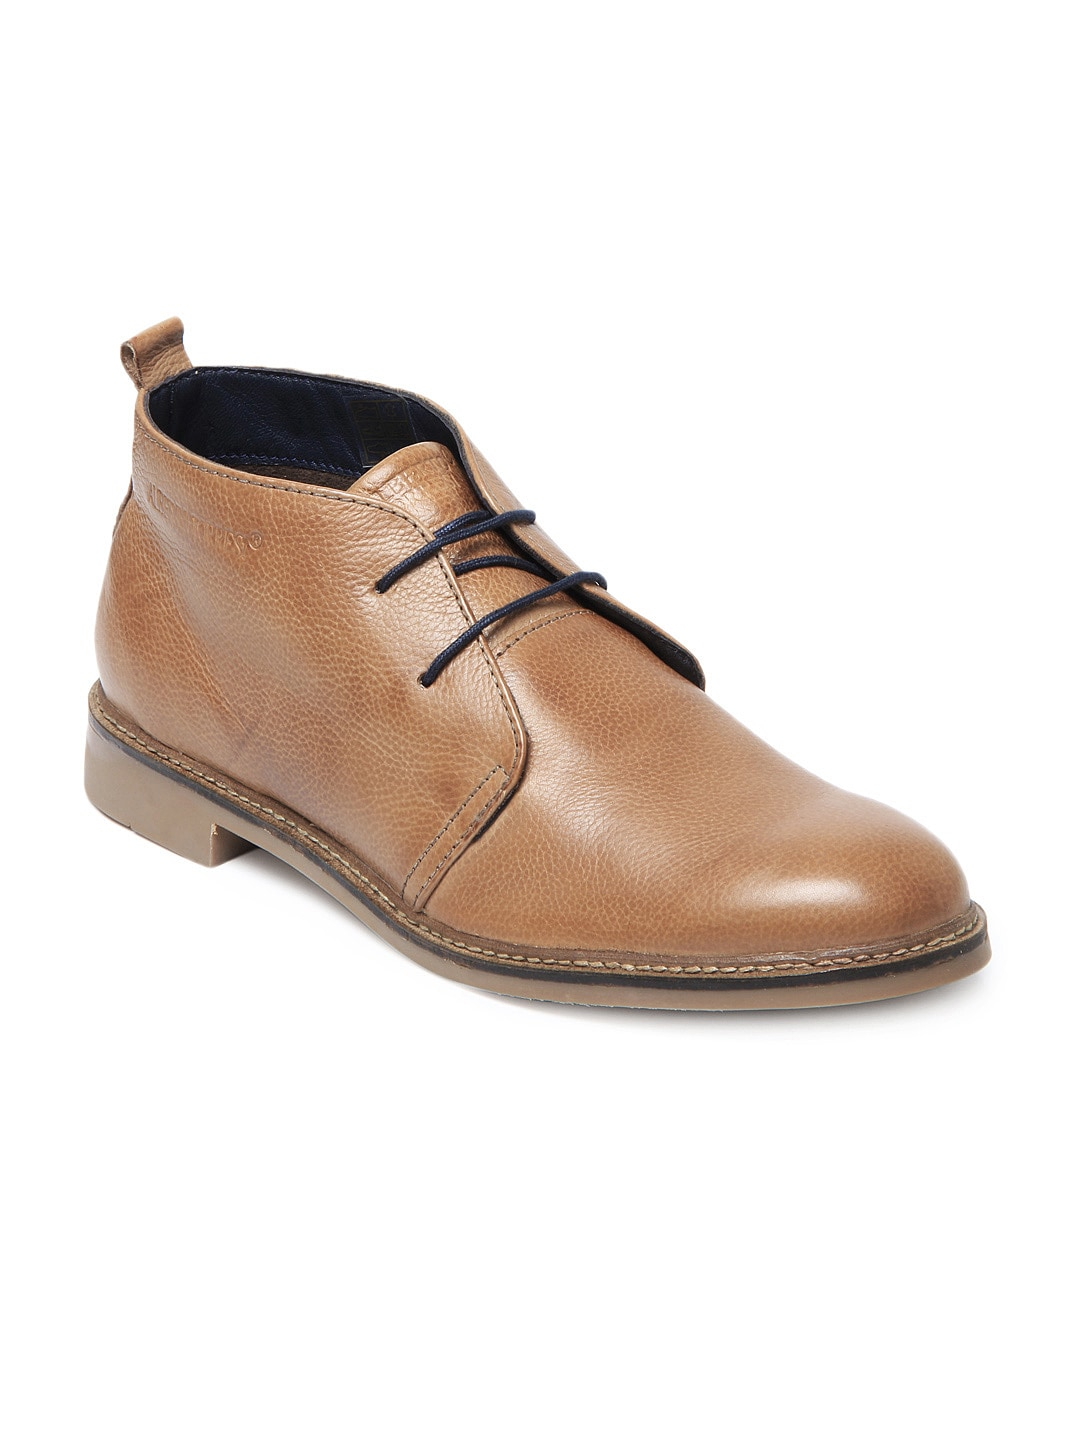 buy alberto torresi brown leather semi formal shoes